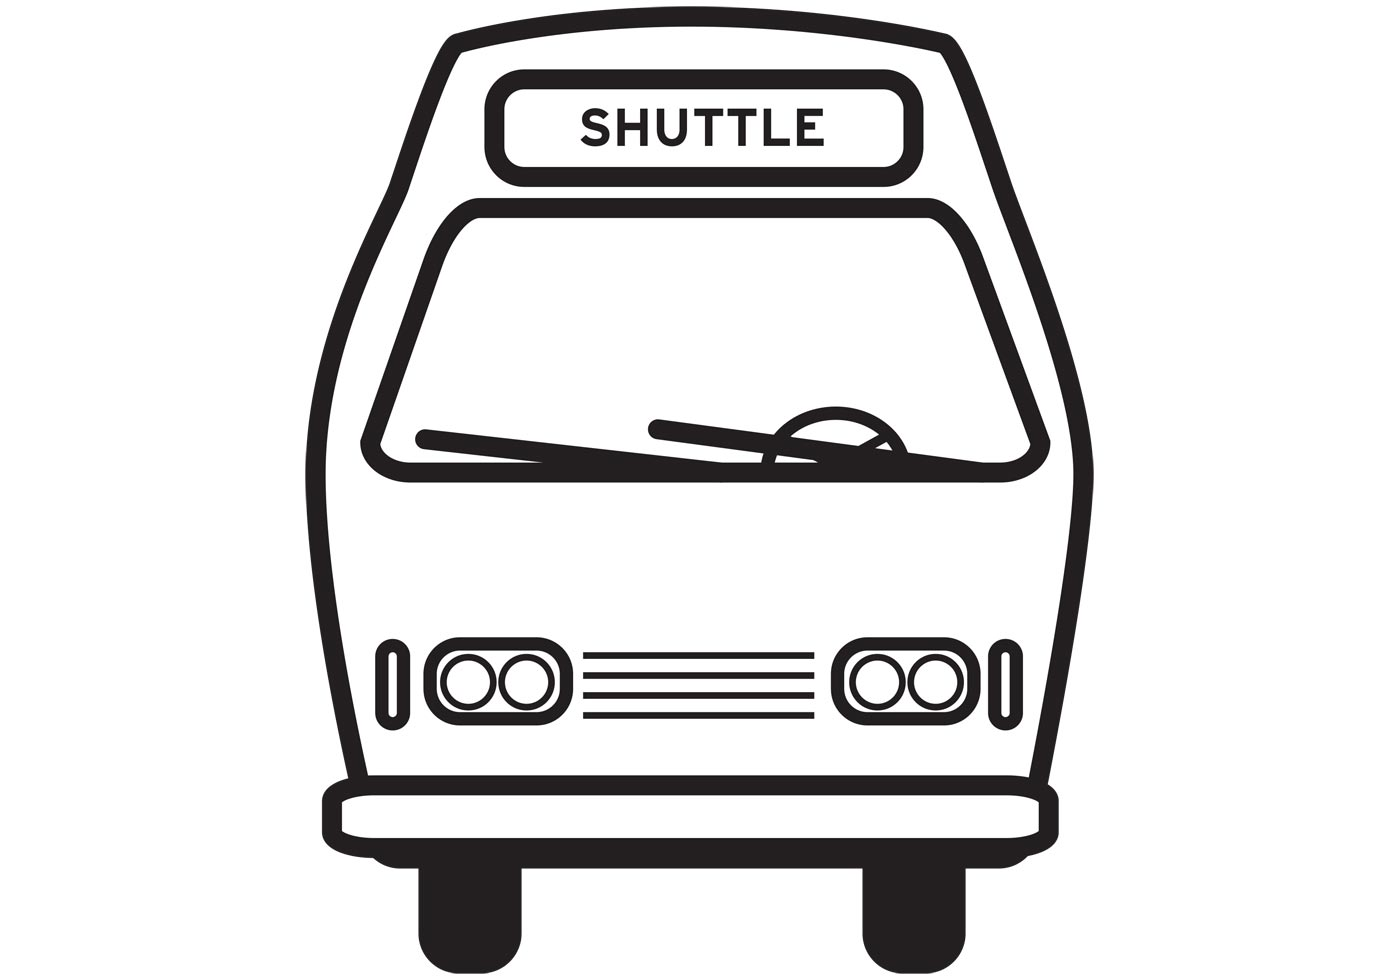 shuttle-bus-icon-vector.jpg